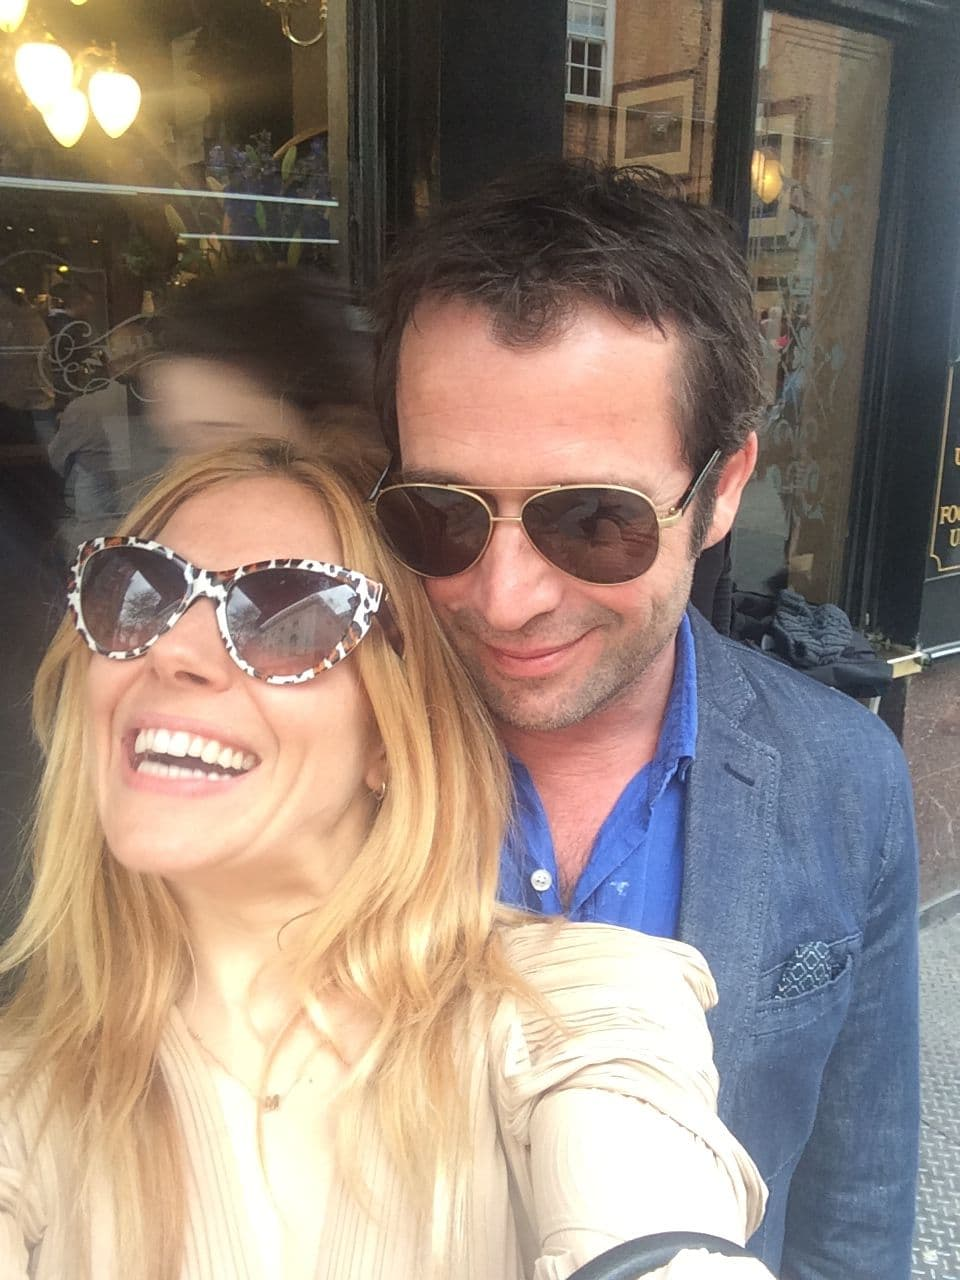 Sienna Miller taking a selfie with man as she laughs